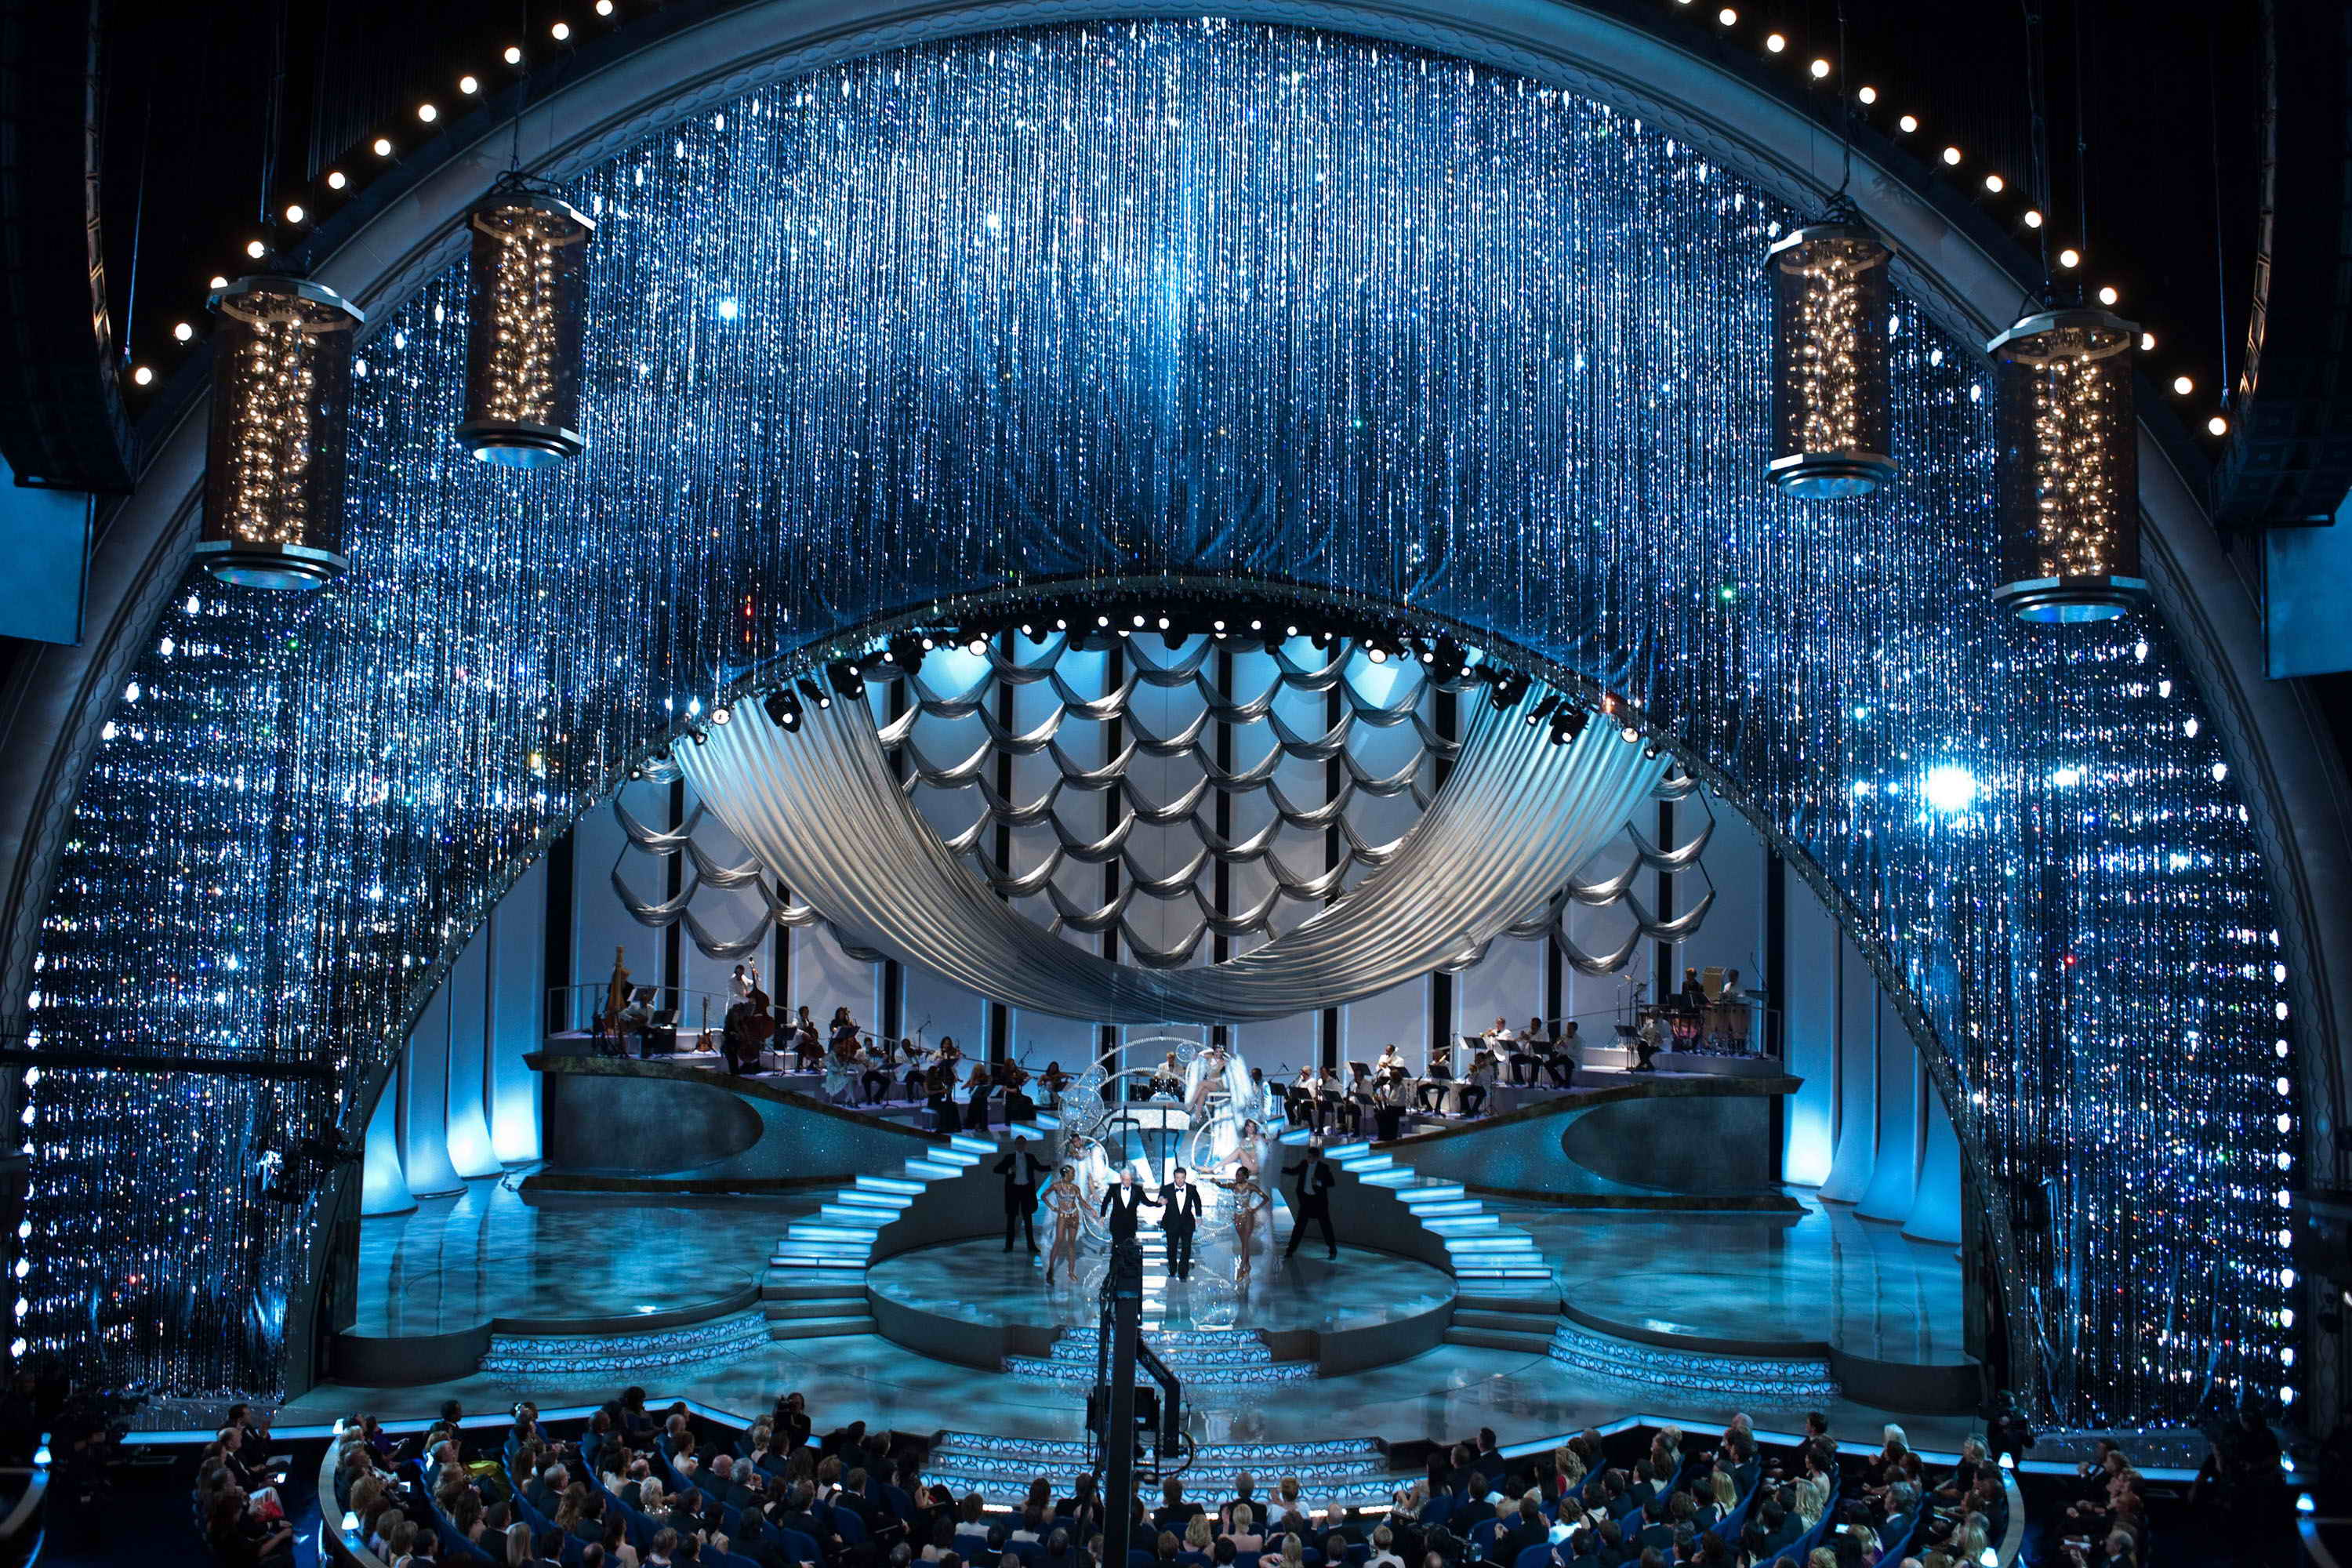 Curtain-for-the-2010-Oscars-with-more-than-100000-crystals-designed-by-David-Rockwell.-©-A.M.P.A.S